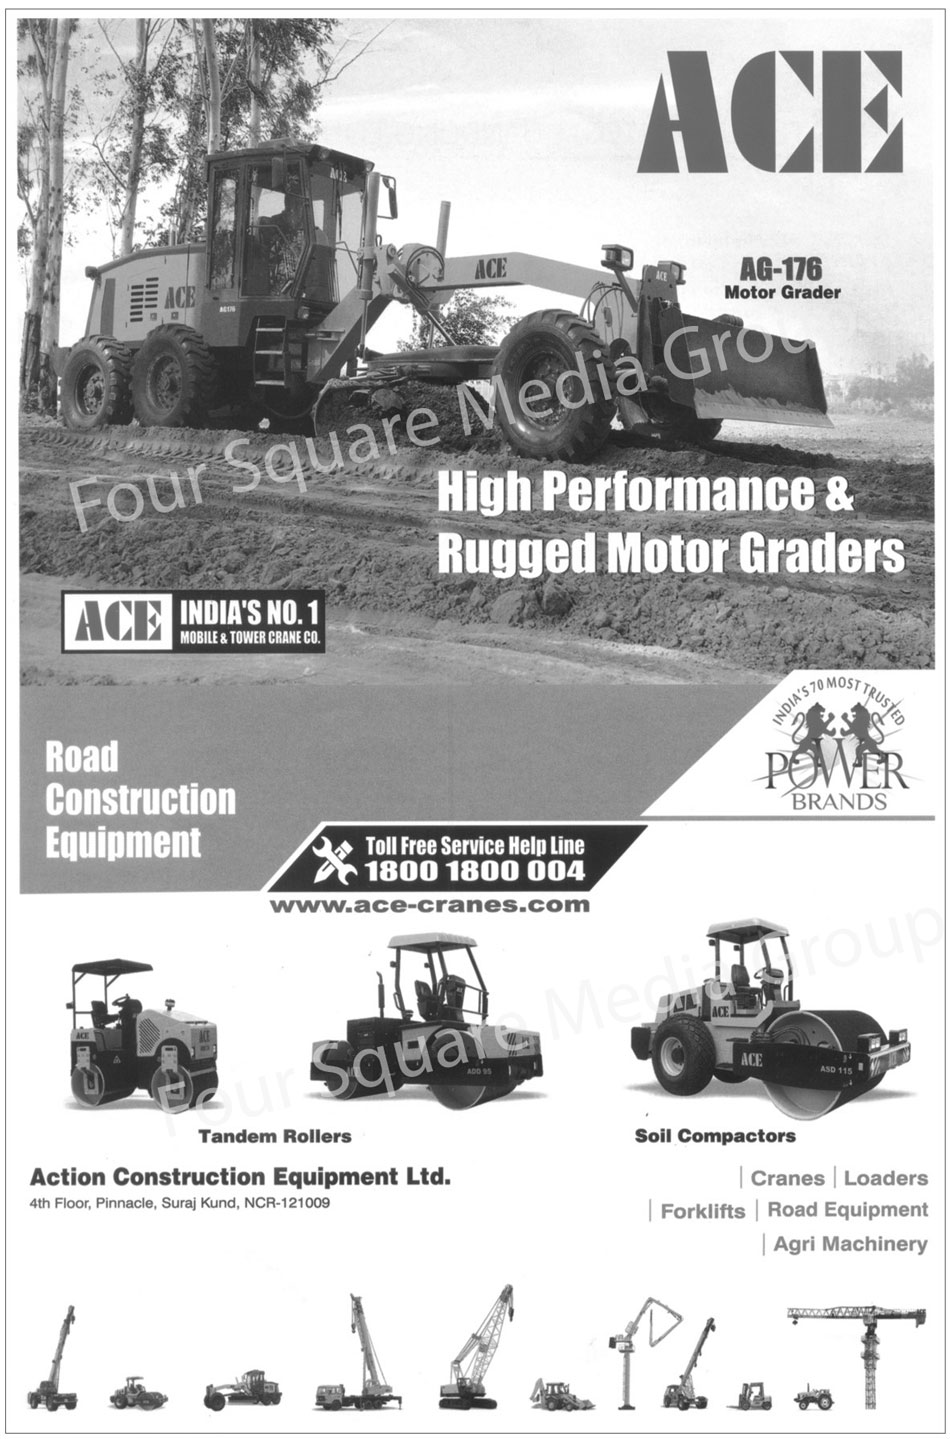 Road Construction Equipments, Tandem Rollers, Soil Compactors, Cranes, Loaders, Forklifts, Road Equipments, Agri Machinery